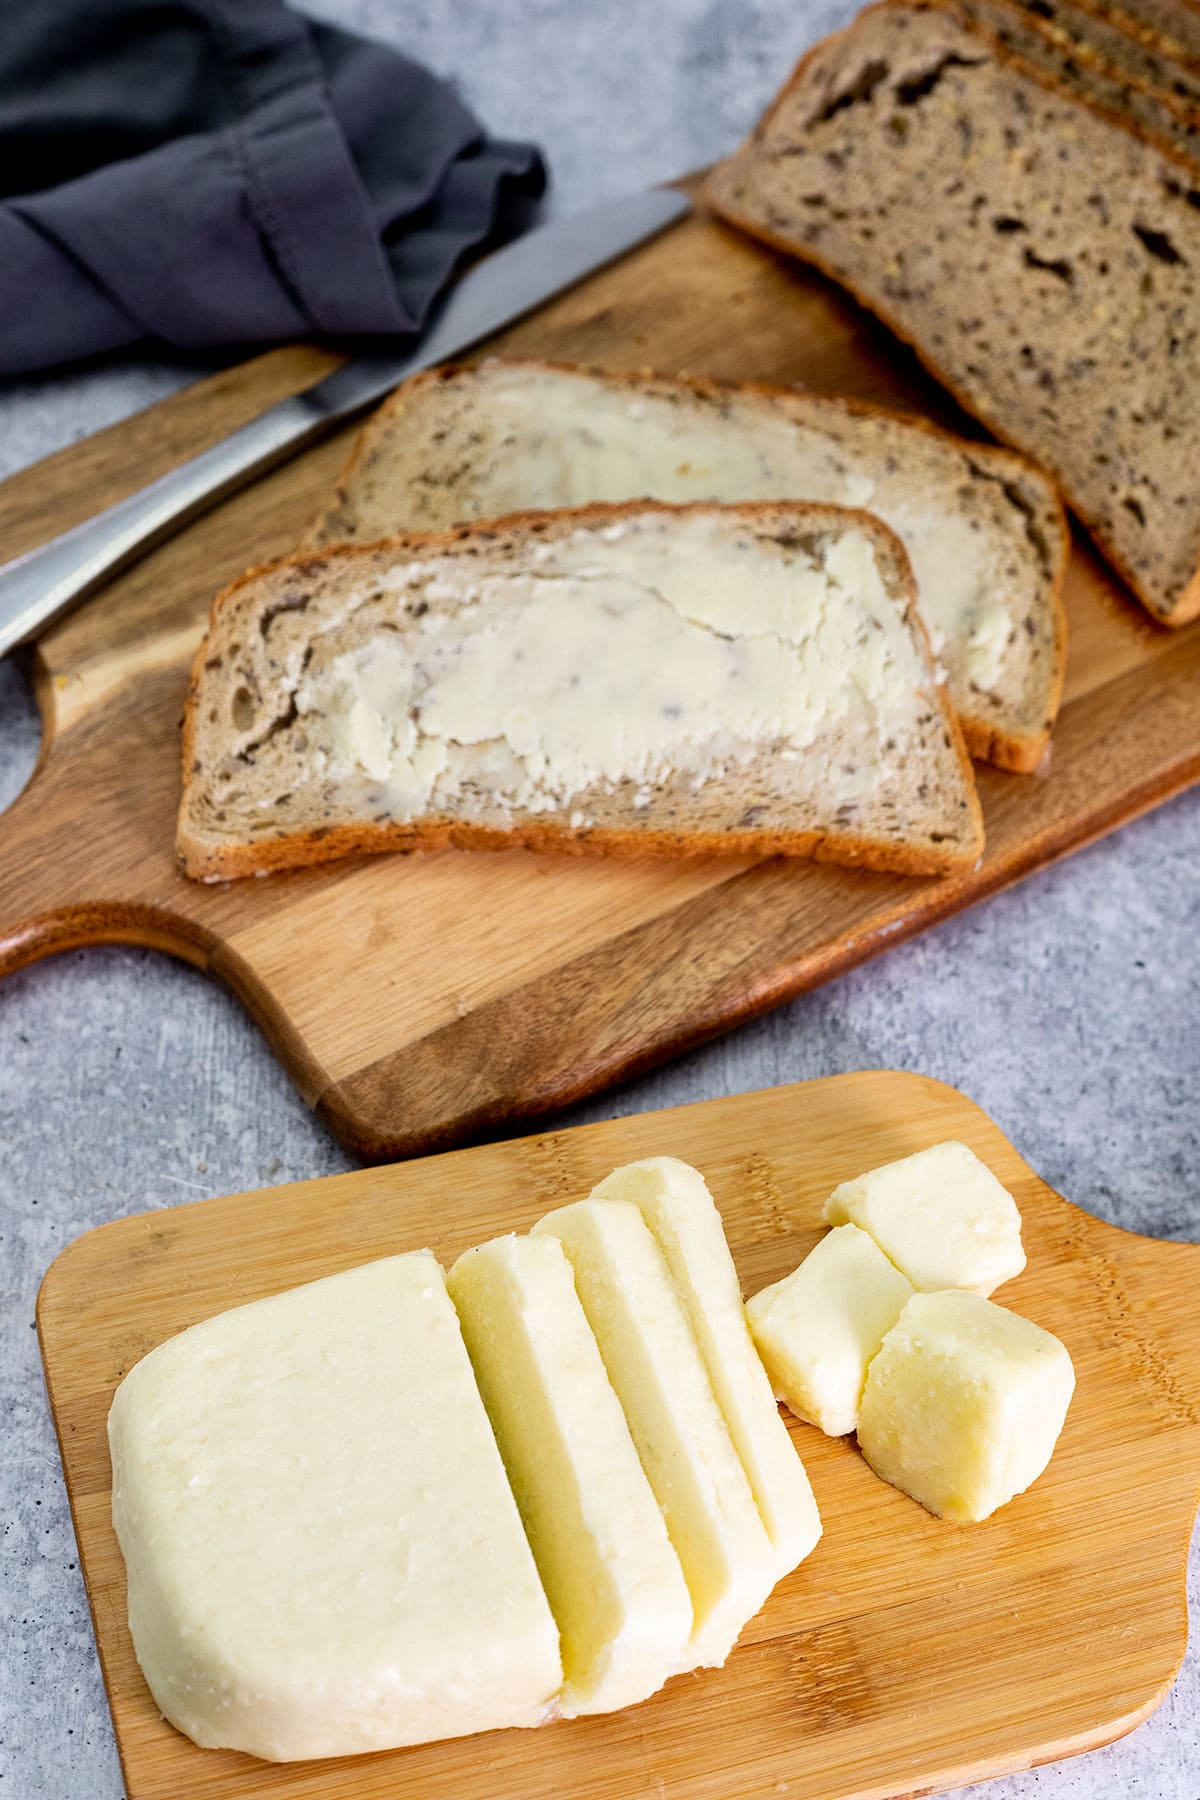 Vegan Butter Healthier Steps Coconut oil is just the oil extracted from the coconut where as coconut butter is the whole coconut ground up into a butter. vegan butter